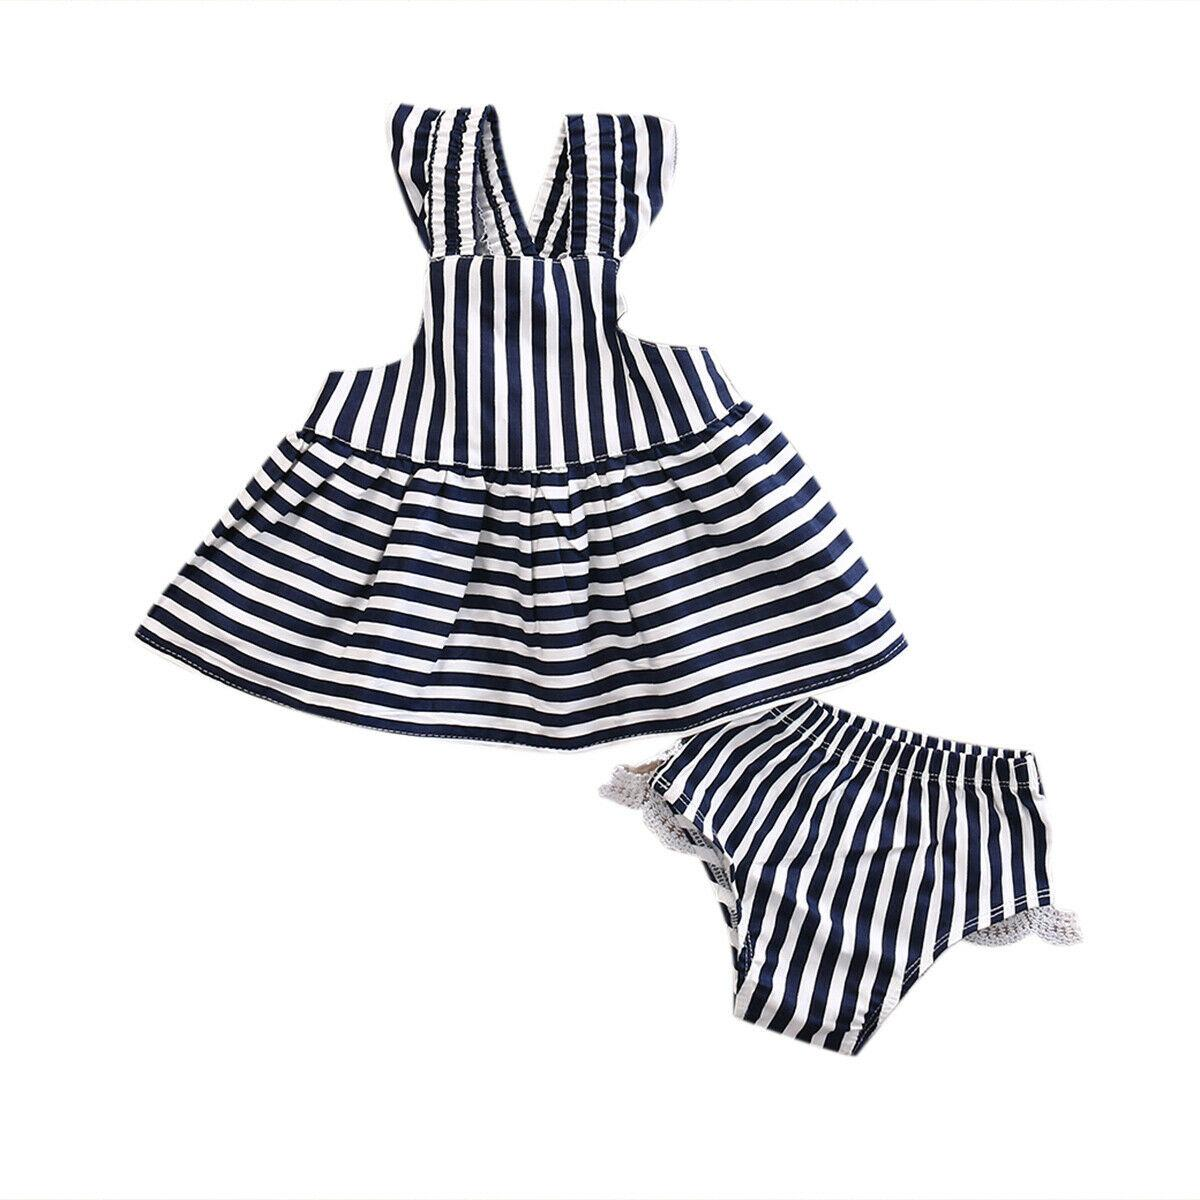 1b984ebd8296f 2019 Baby Girls Clothes Summer Sleeveless Striped Cloth Set Sunsuit Infant  Outfit Stripe Backless Dress Kids Briefs Clothes Sets From Wangxiaofeng806,  ...